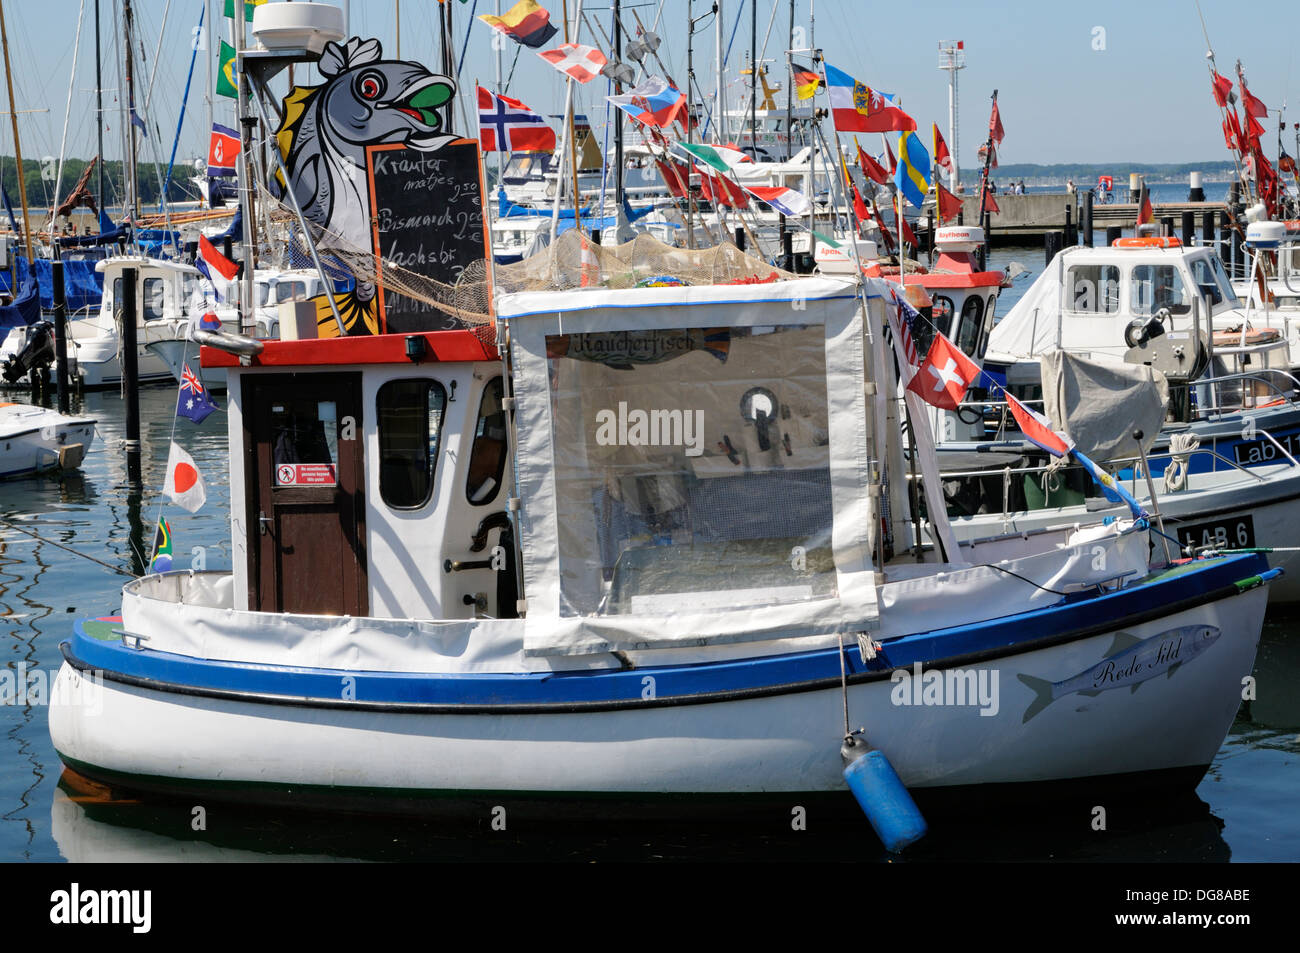 Verkauf von Fischbrötchen direkt vom Kutter, Laboe, Deutschland. | Sale of fish rolls directly from the cutter, Laboe, Germany. - Stock Image